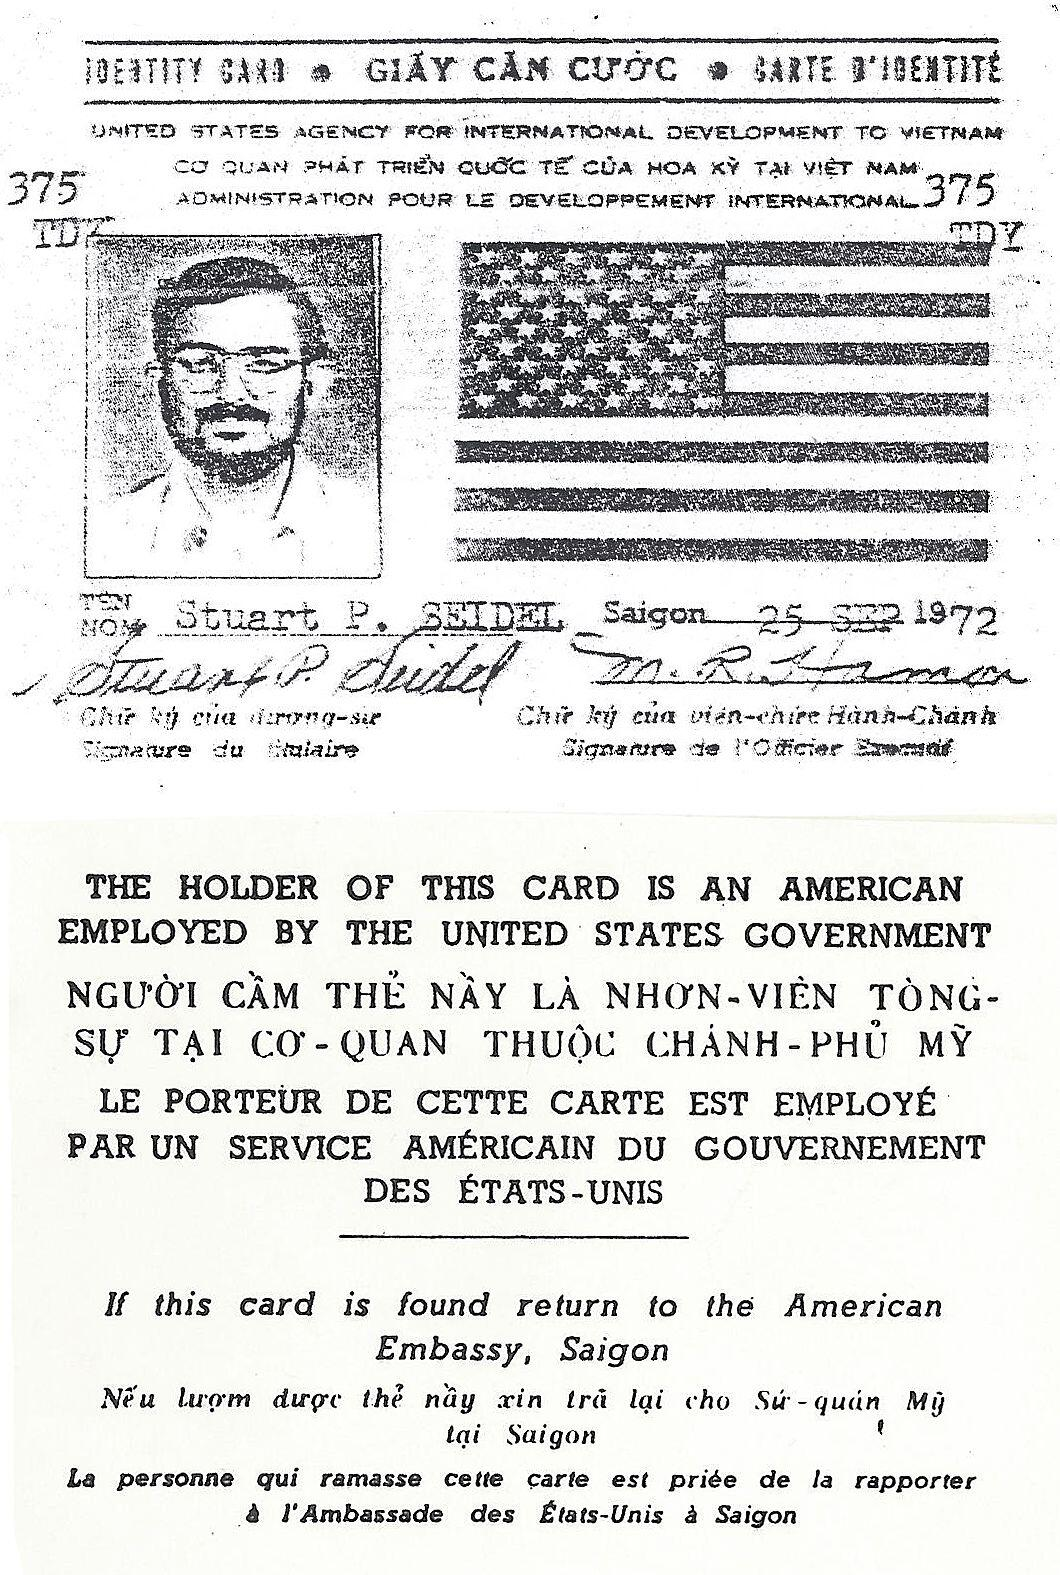 As an attorney in the Chief Counsel's office at Customs headquarters in Washington, Stuart P. Seidel was invited to Saigon in 1972 to review the draft customs code of the Republic of Vietnam. He worked with Officer Nguyen Tan Thanh to study the laws and suggest modifications. Most of the recommendations in his final 56-page report were adopted in the new Vietnamese Customs Code. This image is from a photocopy of Mr. Seidel's Vietnam identification card; the original was turned in when he left the country. (Courtesy Stuart P. Seidel)